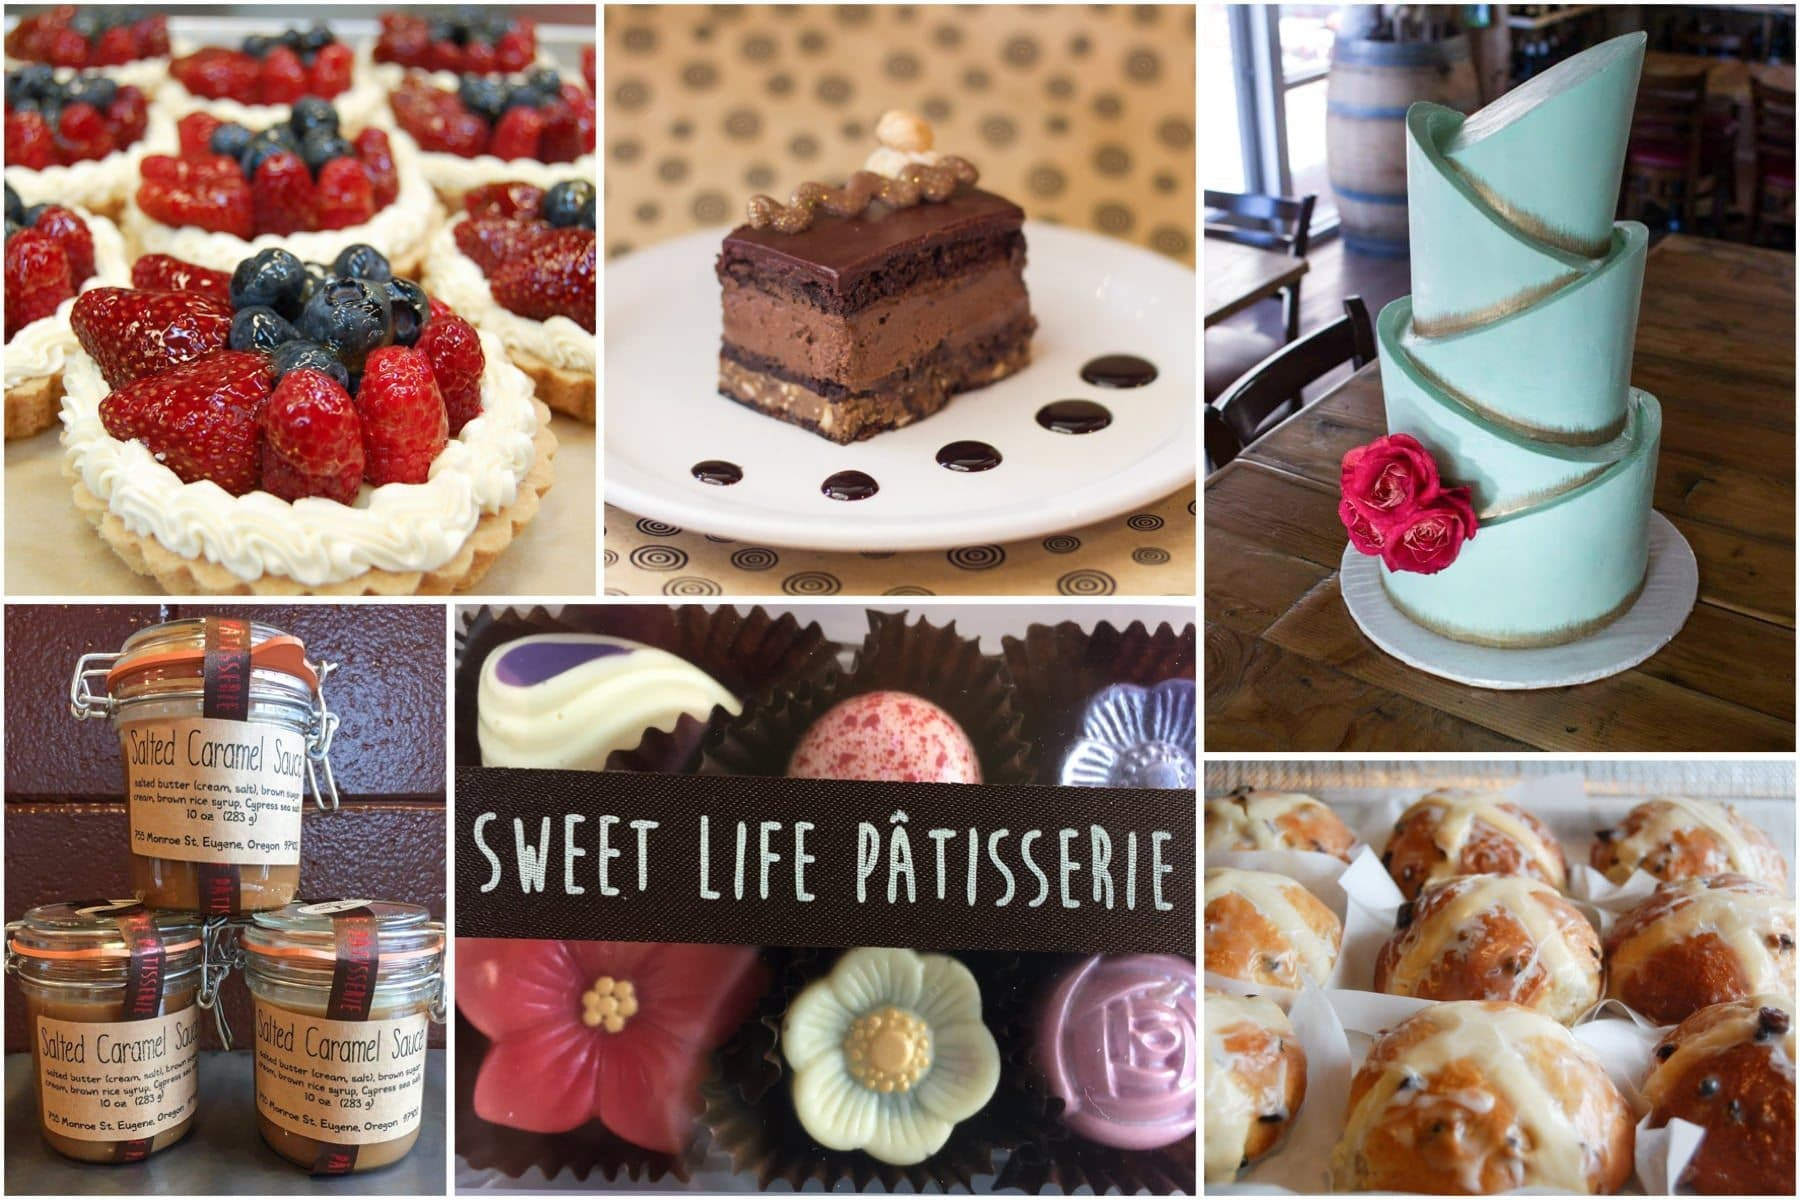 Desserts, Pastries and Cakes from Sweet Life Patisserie, Eugene, OR